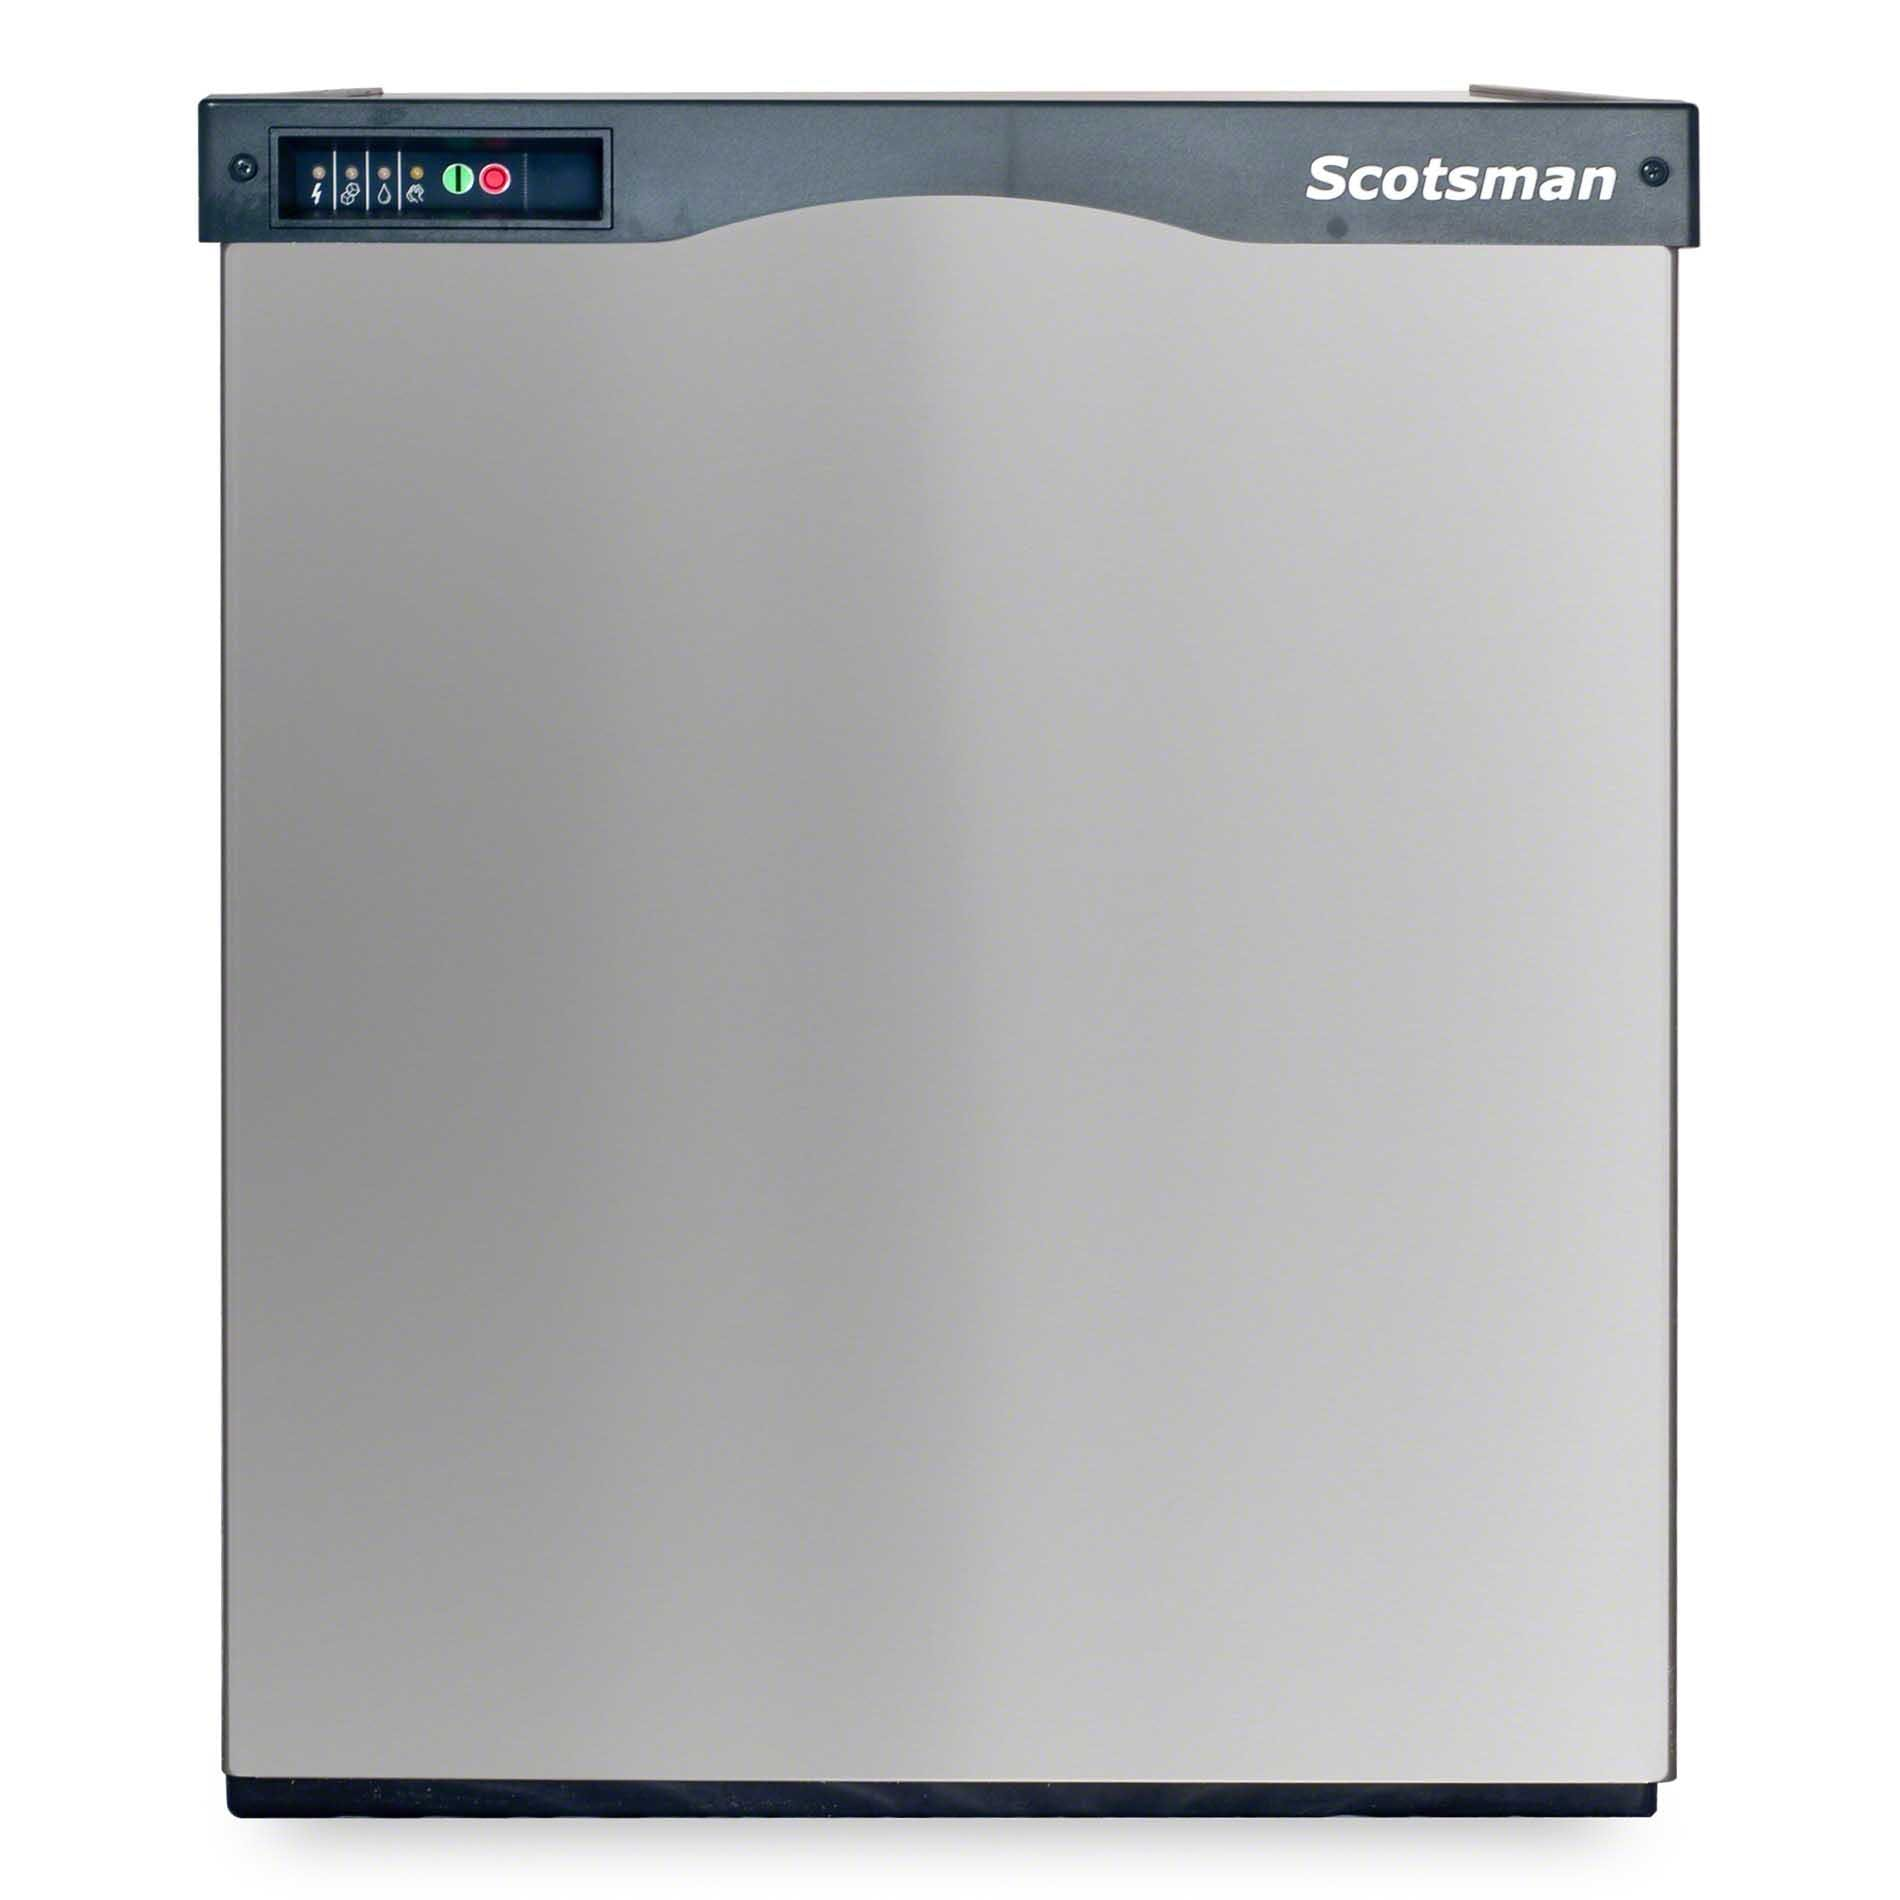 Scotsman - F1222R-3A 1250 lb Flake Ice Machine - Prodigy Series Ice machine sold by Food Service Warehouse